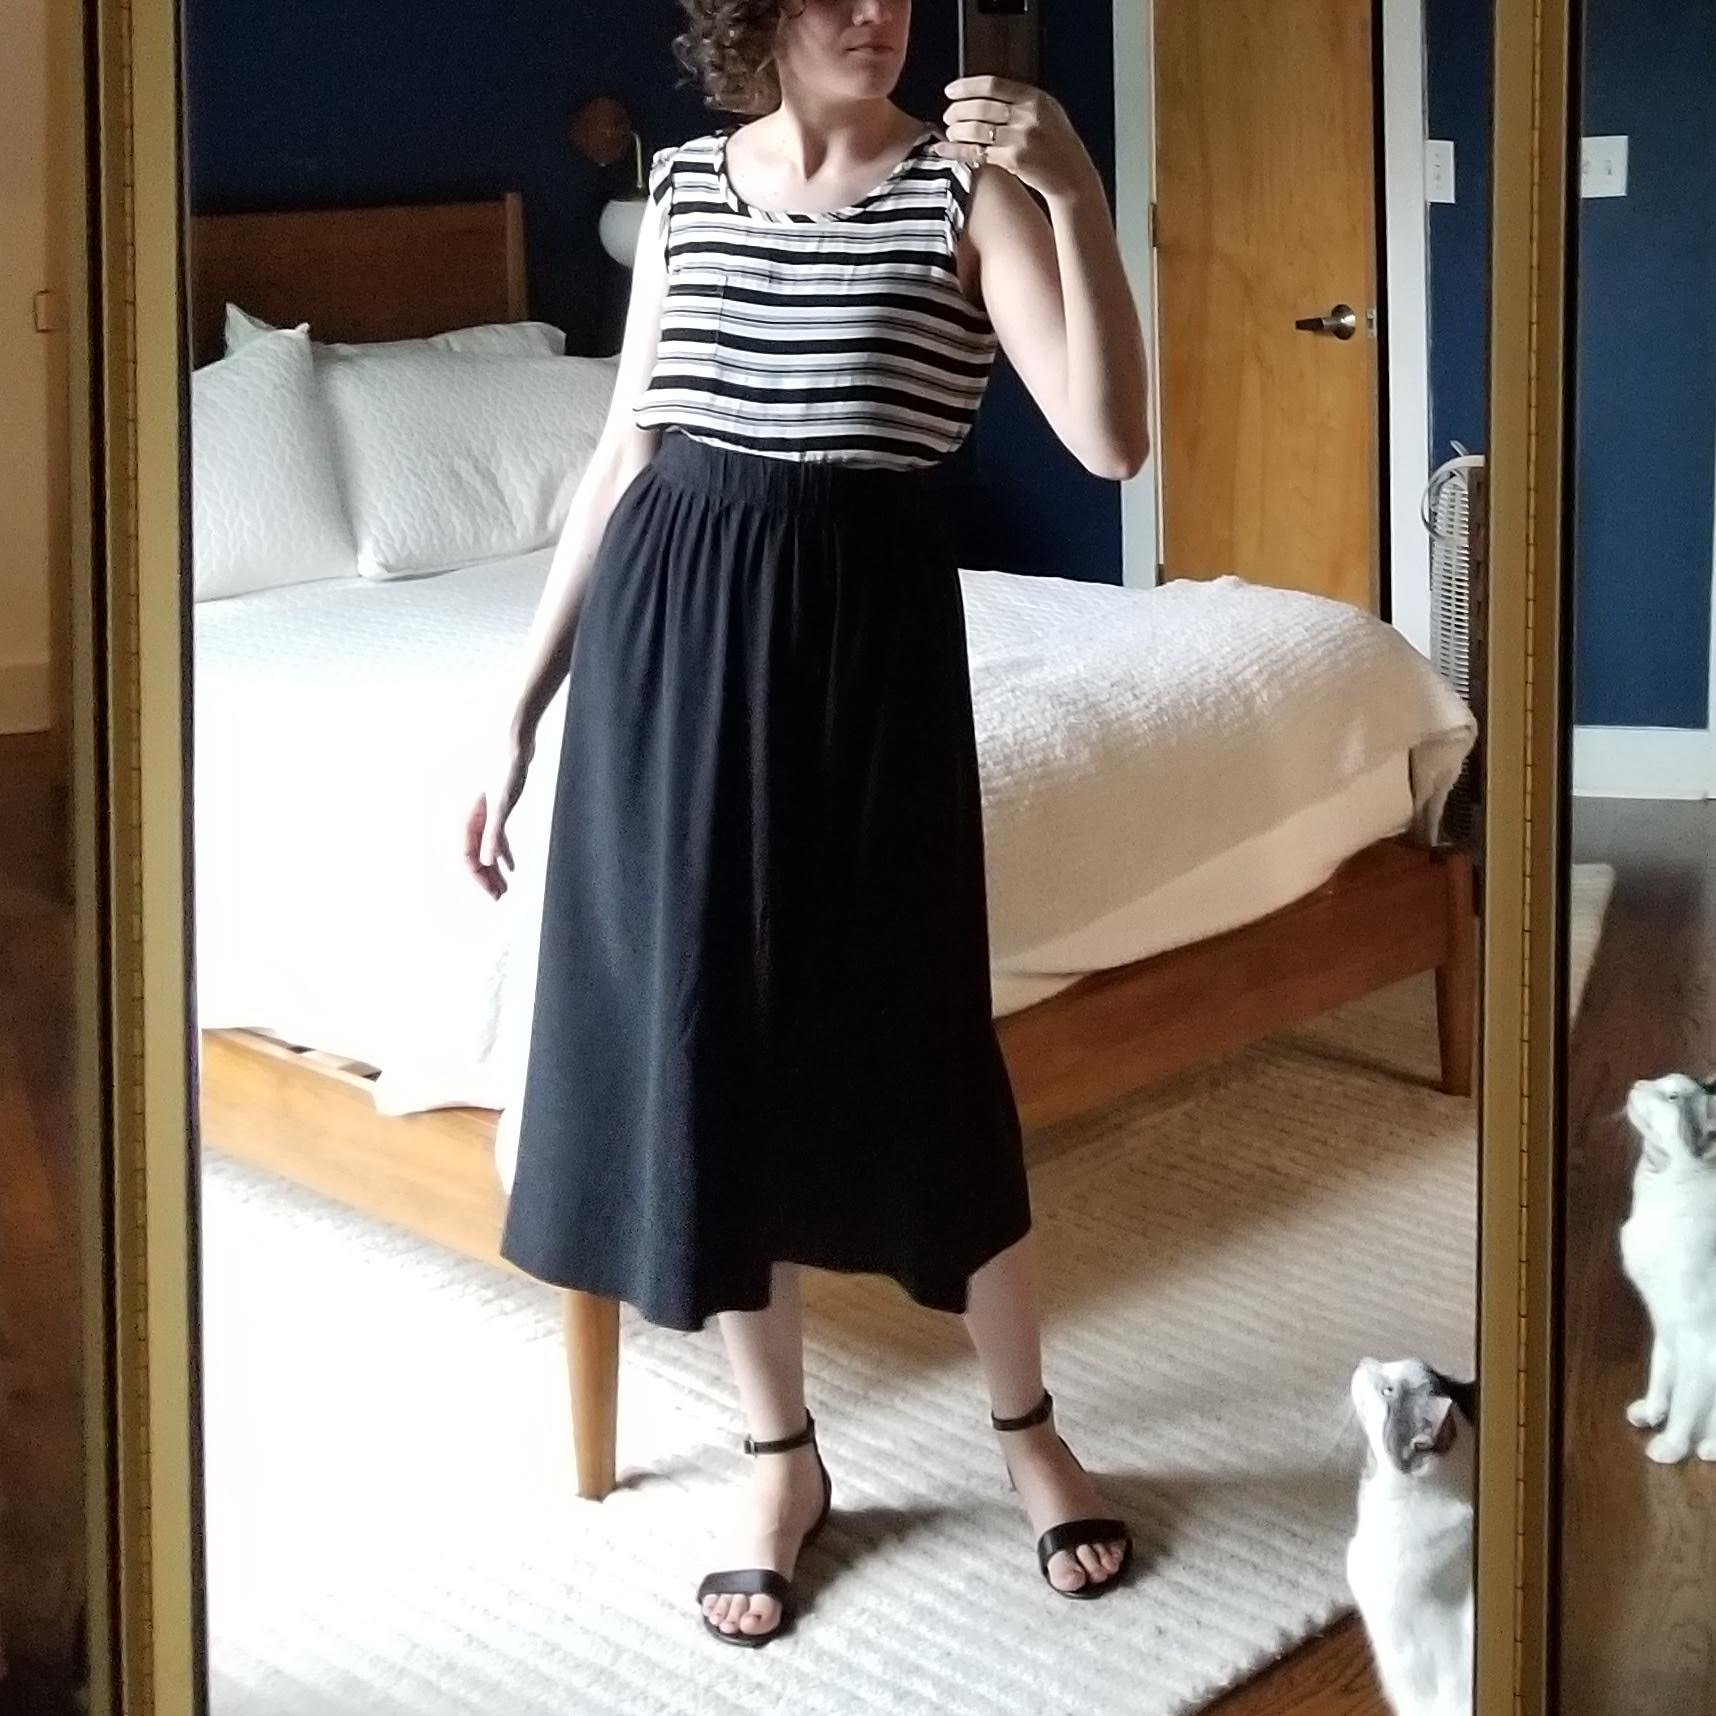 Tuesday - May 22, 2018Day two of the new-to-me black sandals. They look great with the ES bel skirt! Blousier top layer. I didn't realize just how many striped tops I own, but I wore two different with black skirts last week too. Anyway, this has a bit of a breezy feel to it, and it matches Stuart.Shirt / Loft (1H)Skirt / Elizabeth Suzann (1H)Shoes / Nisolo (2H - Slowre)